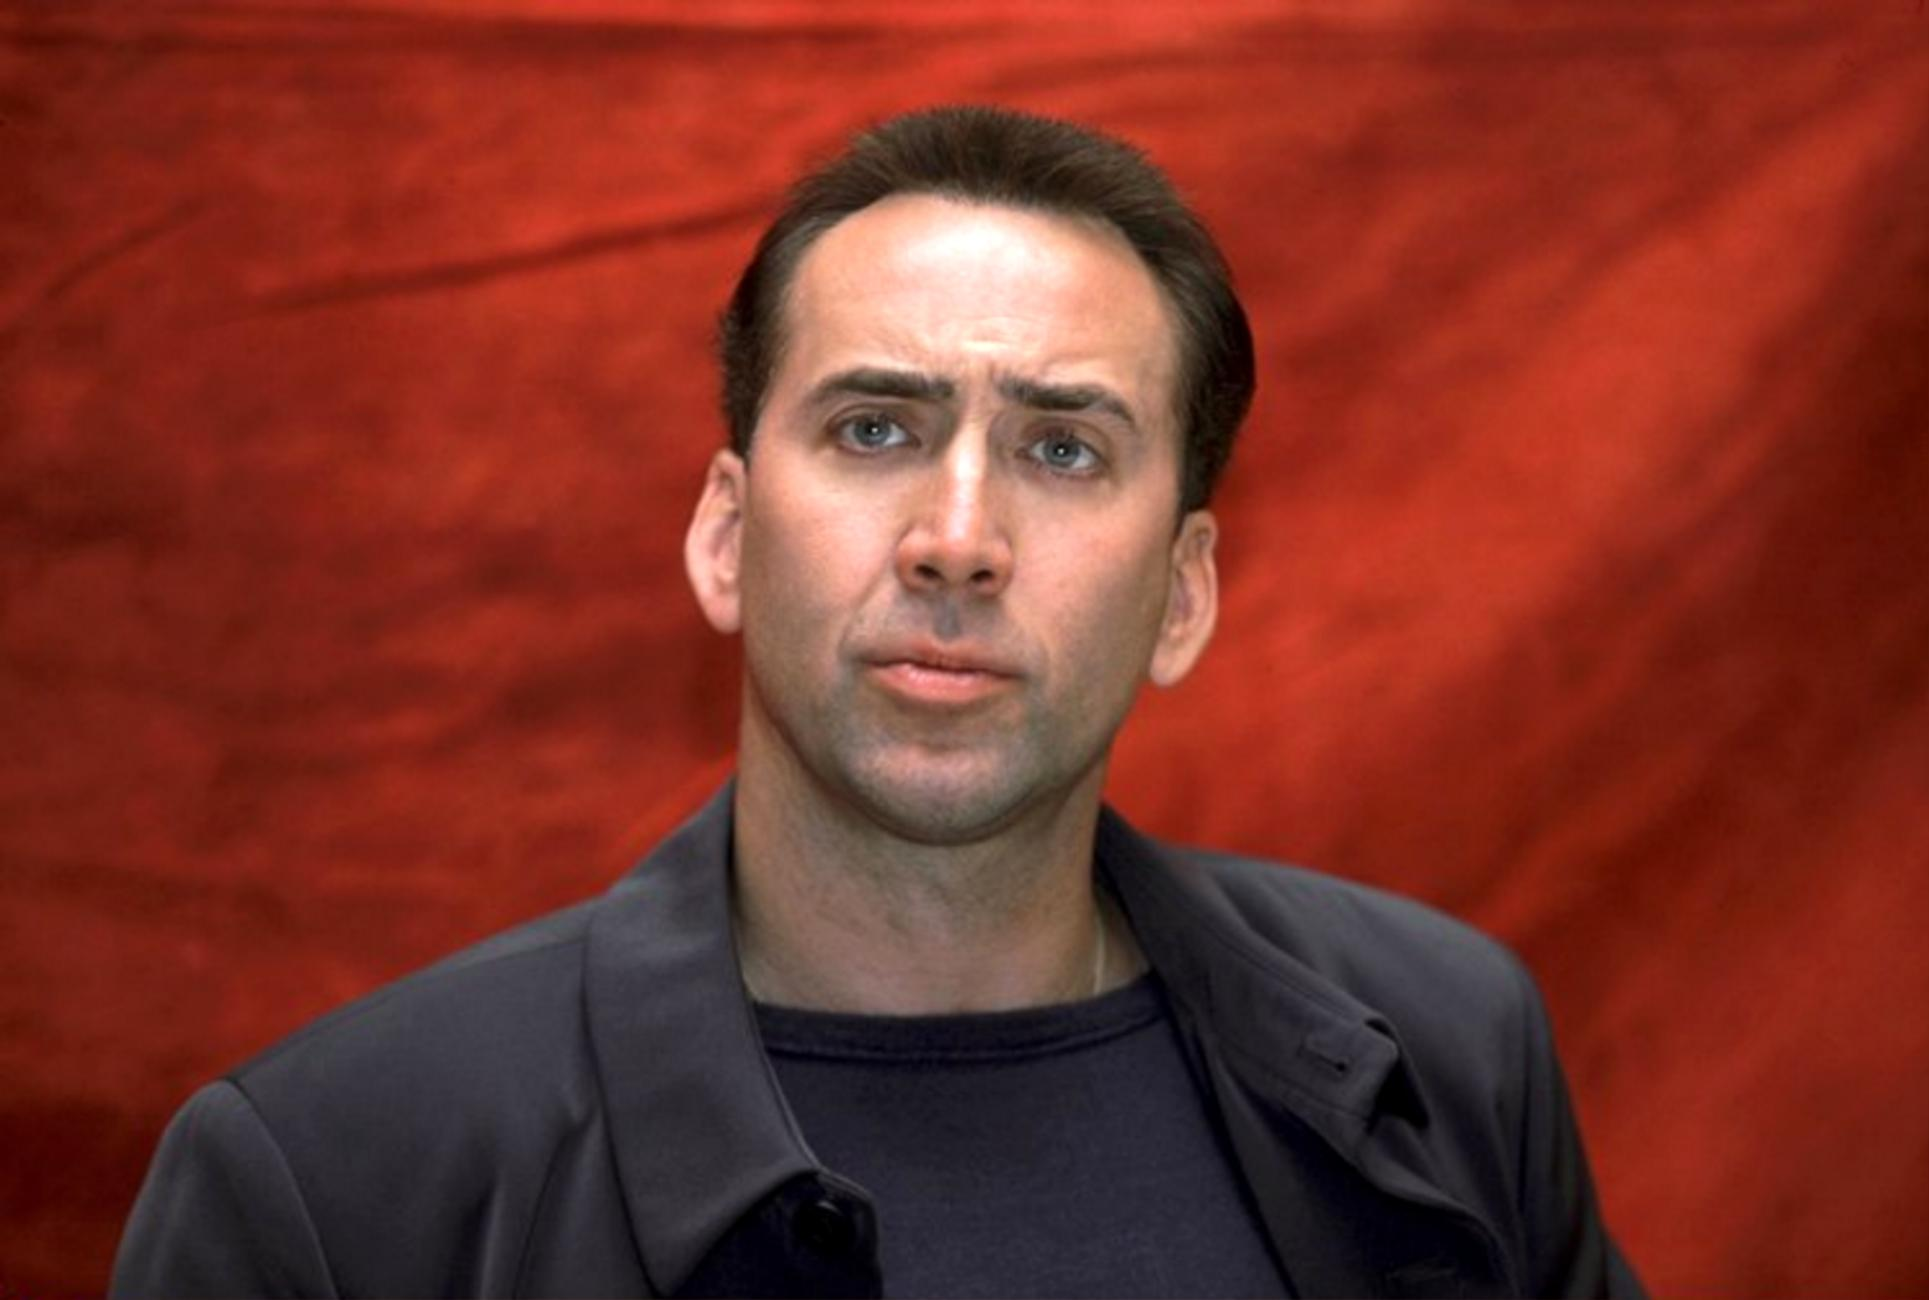 Nicolas Cage Widescreen for desktop